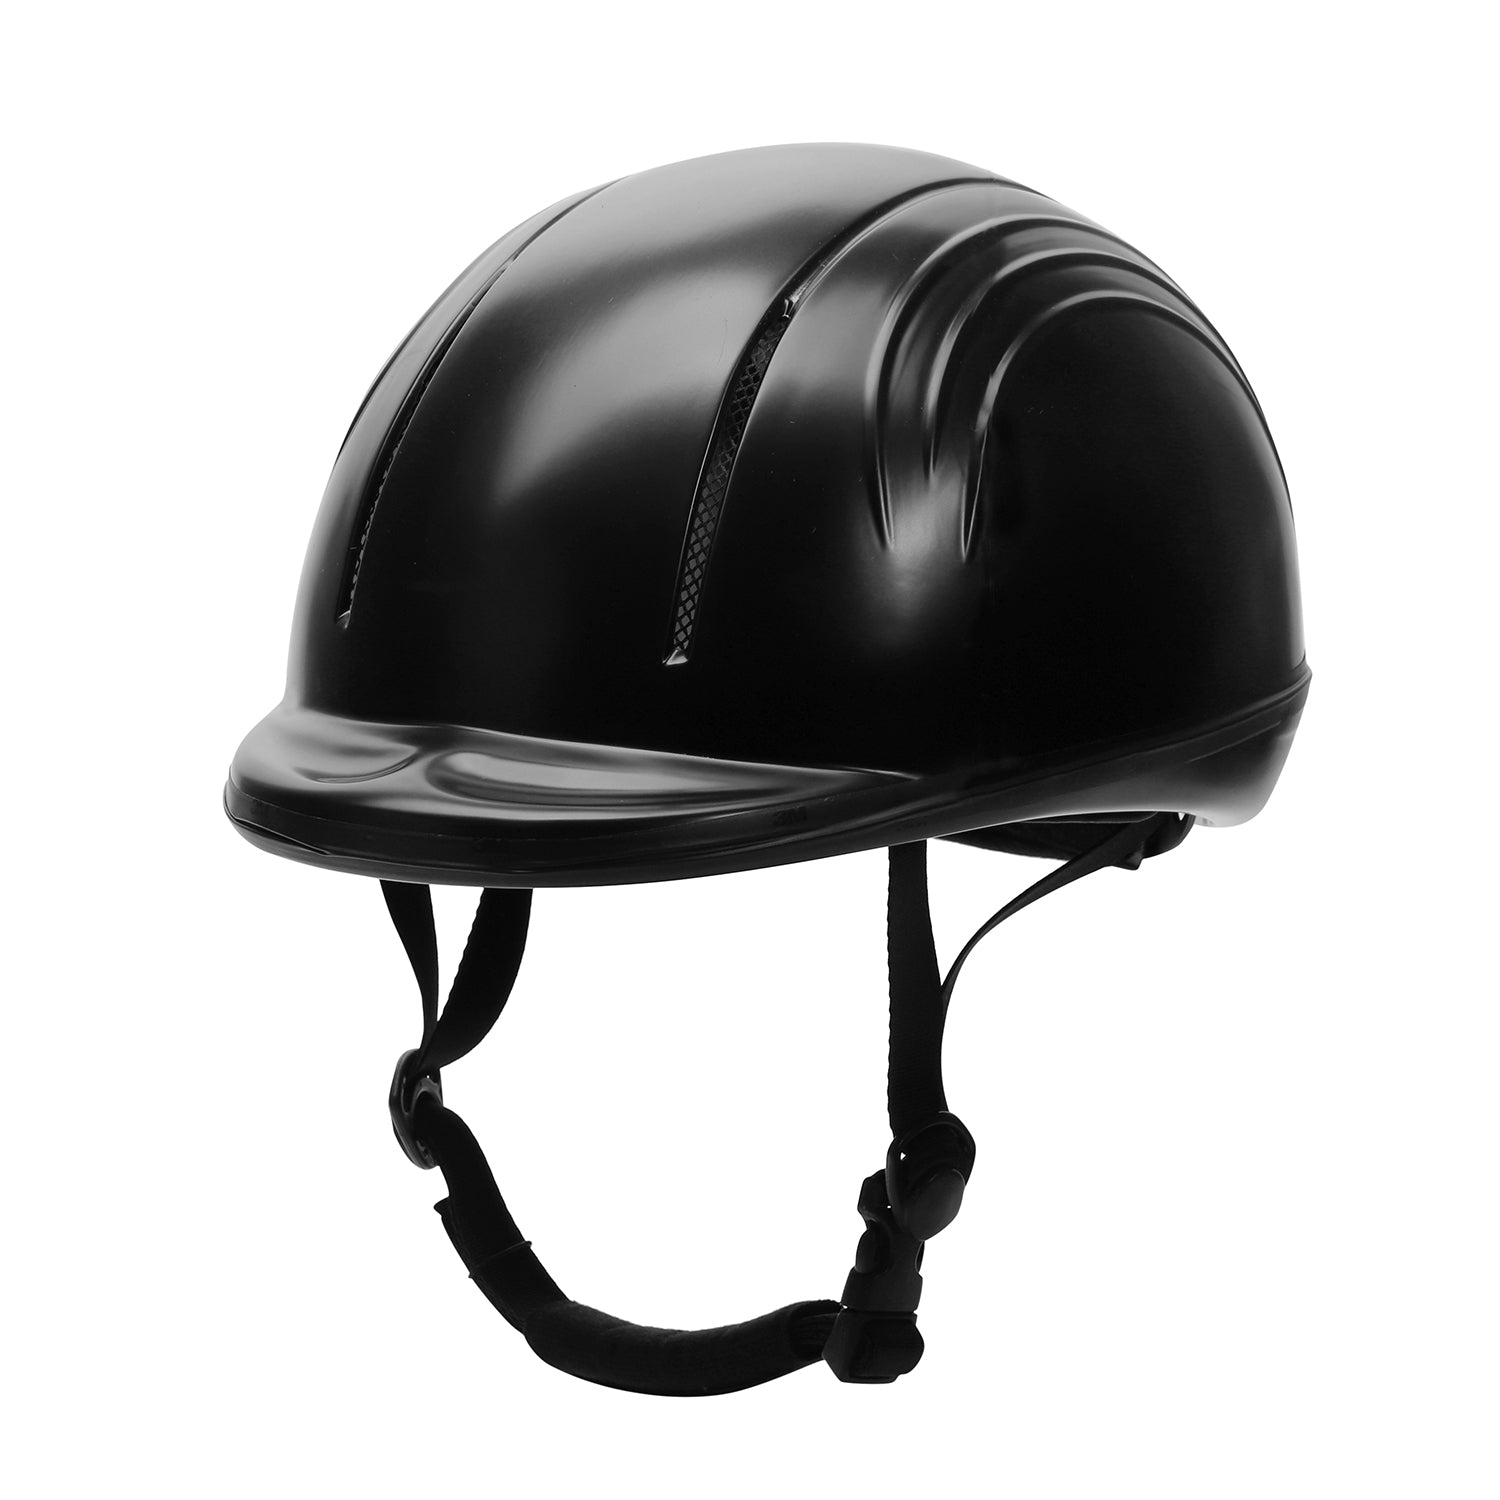 TuffRider Starter Basic Horse Riding Helmet Protective Head Gear for Equestrian Riders - SEI Certified - Black_1